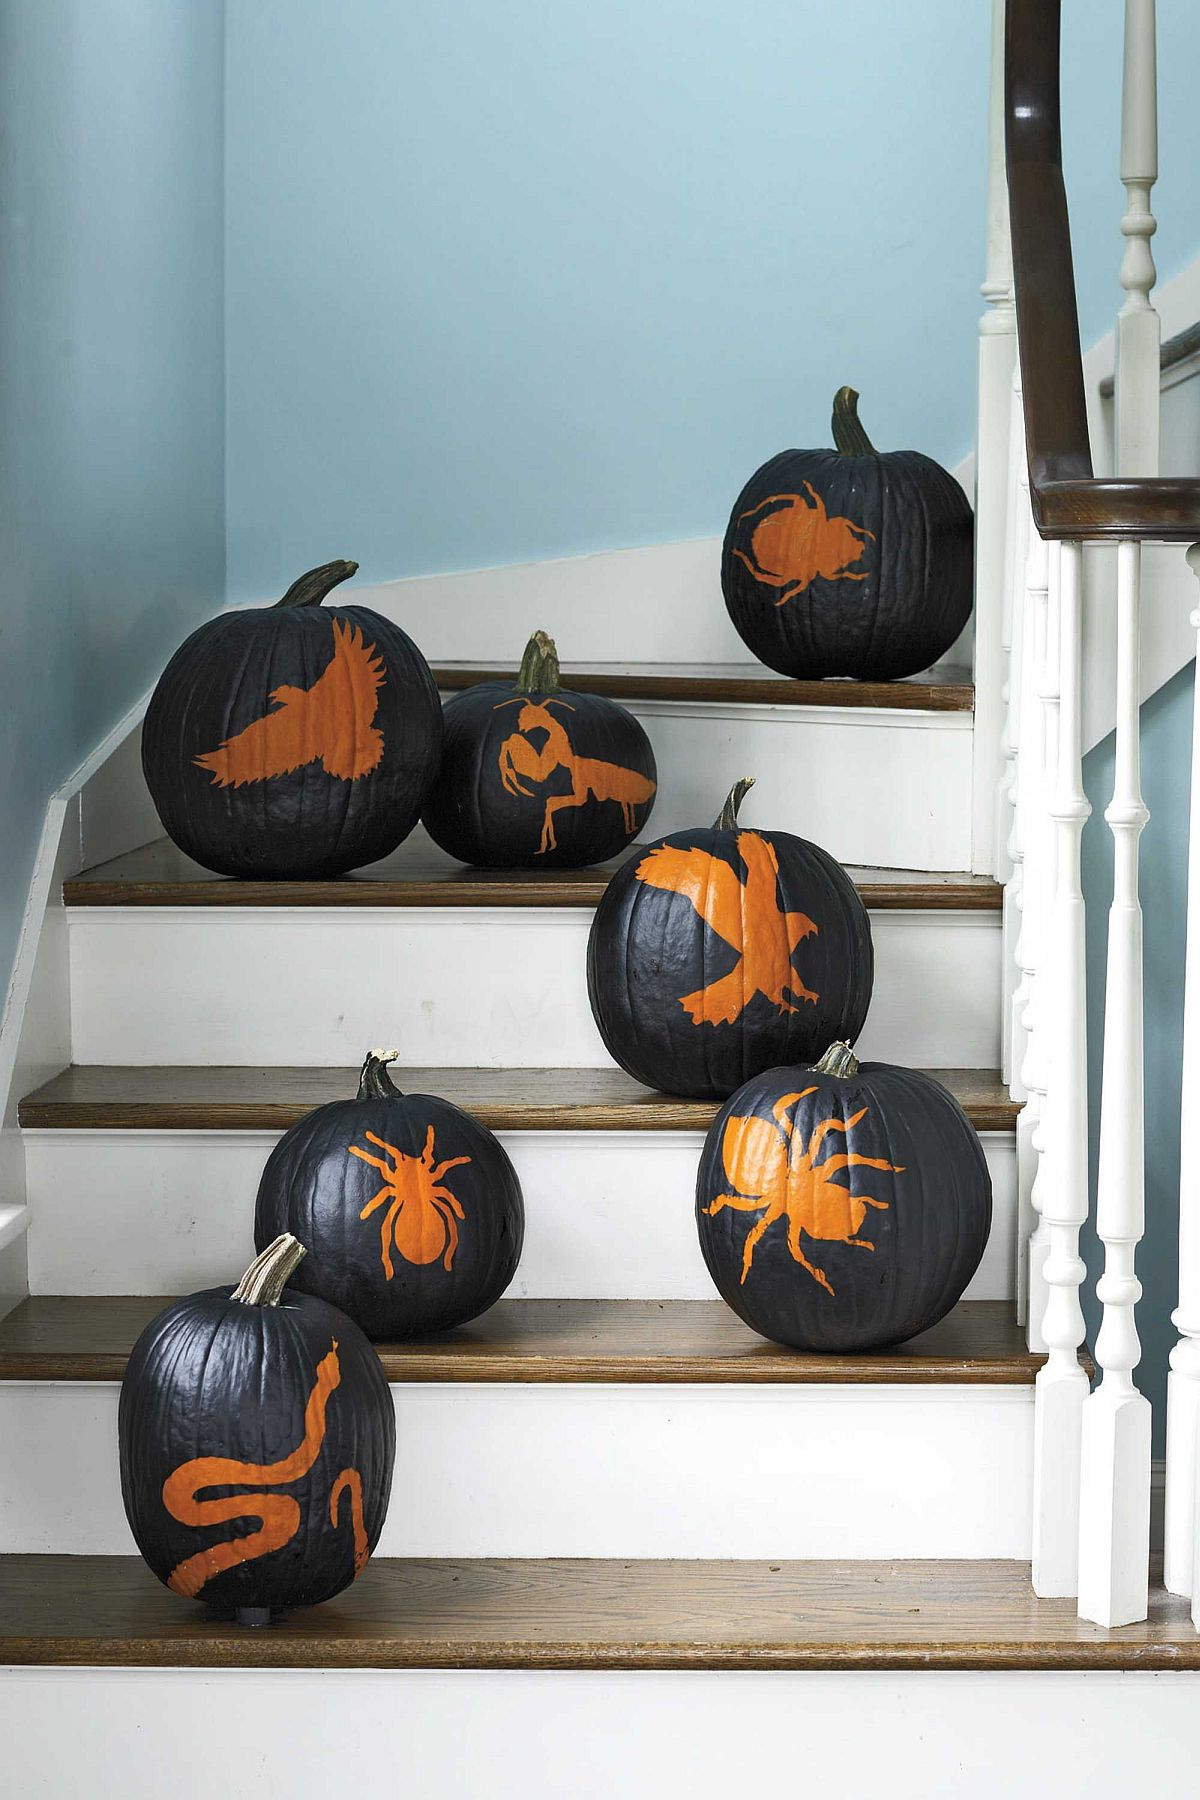 Halloween stencils and paint can turn pumpkins into mot impresive decoraive pieces of the season